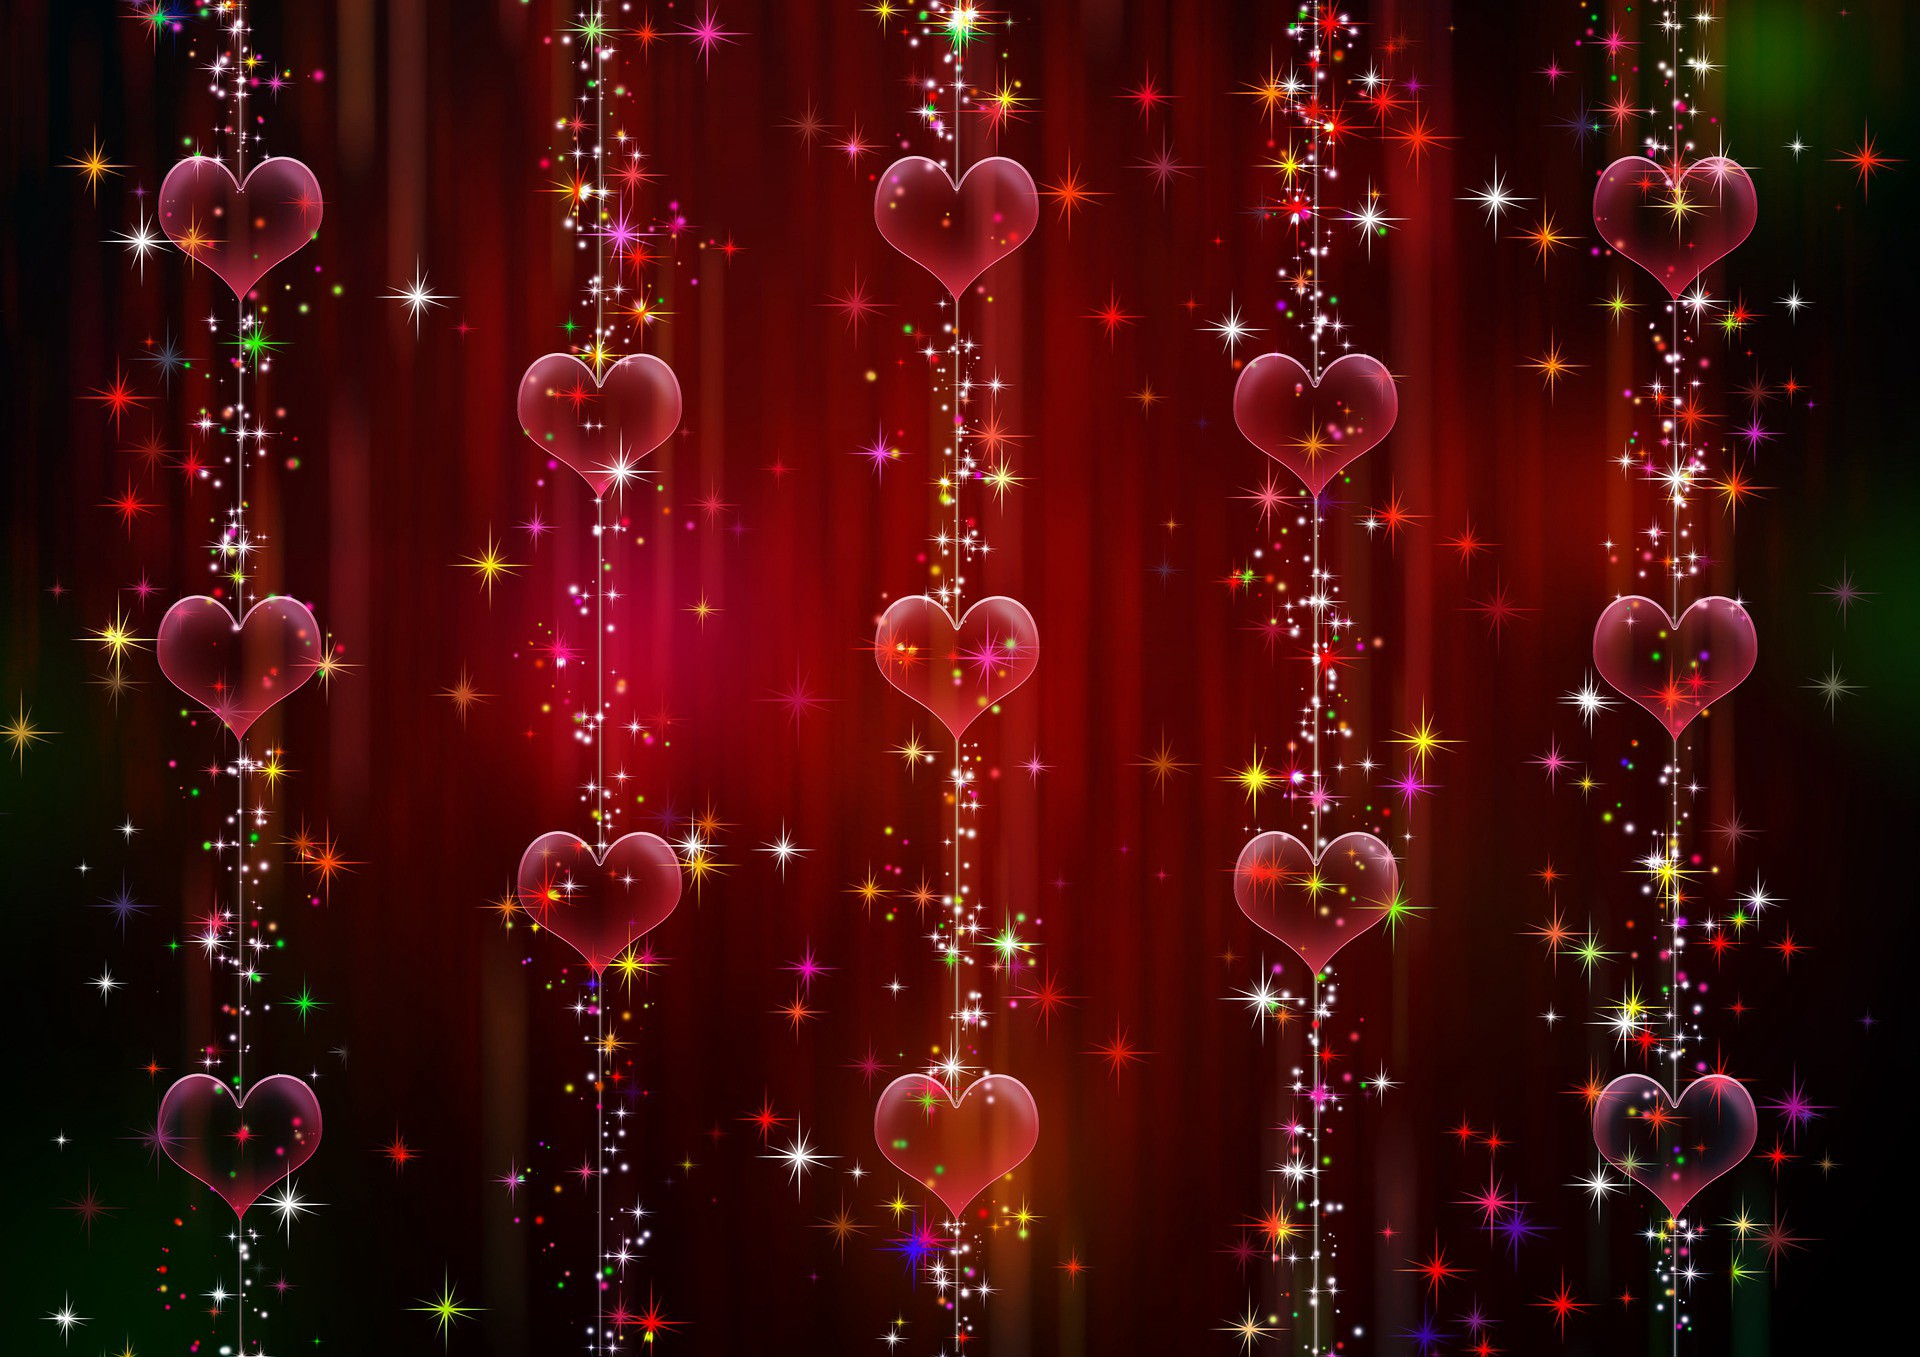 Red hearts on strings, on a red background